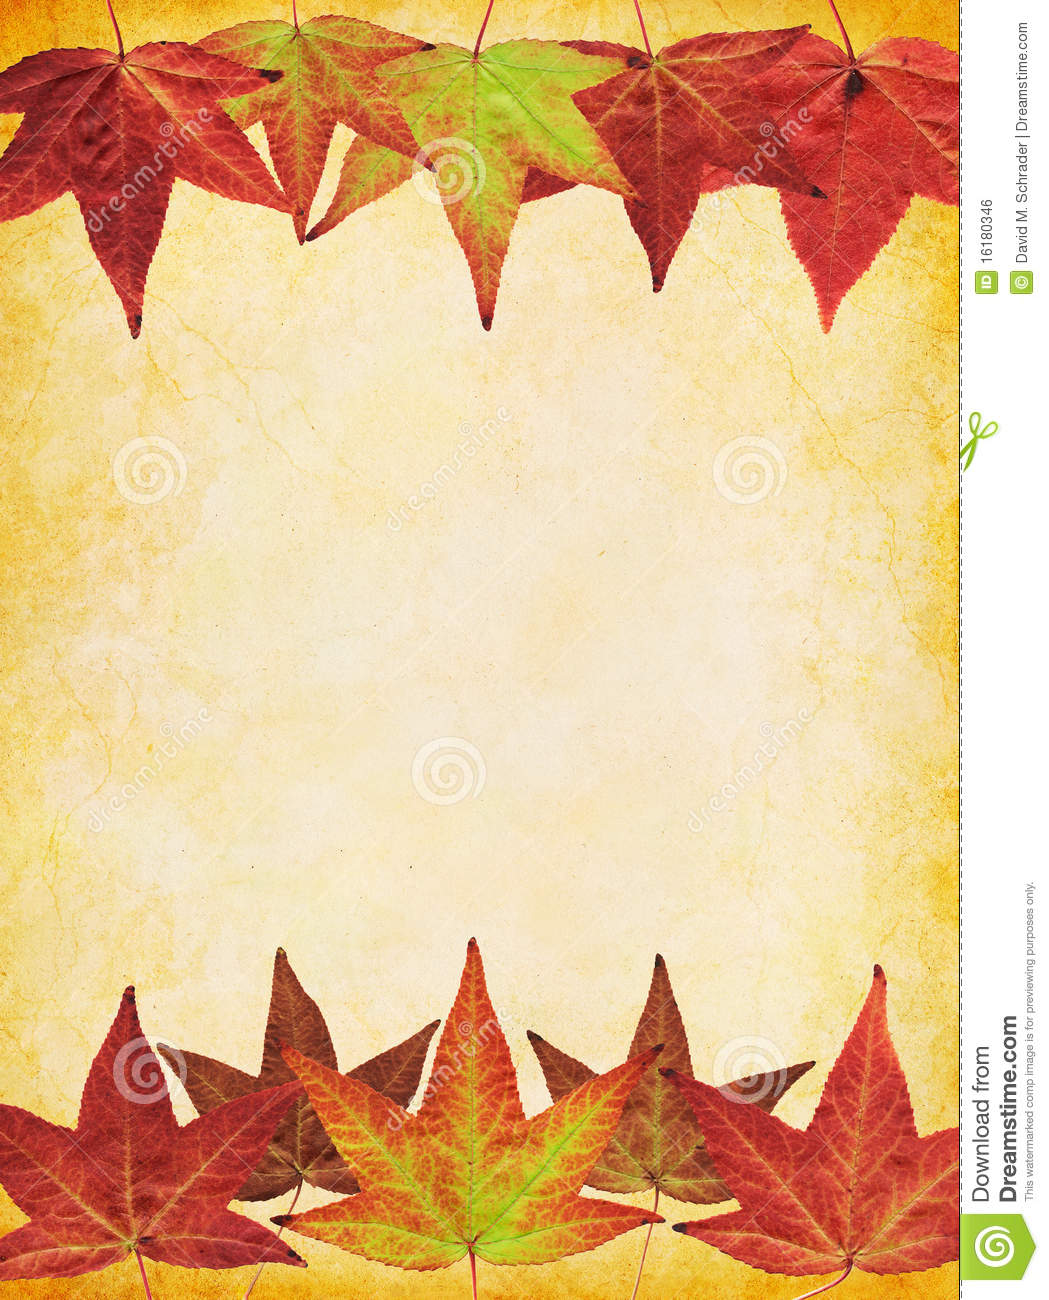 Fall Leaf Background Stock Photo Image Of Glowing